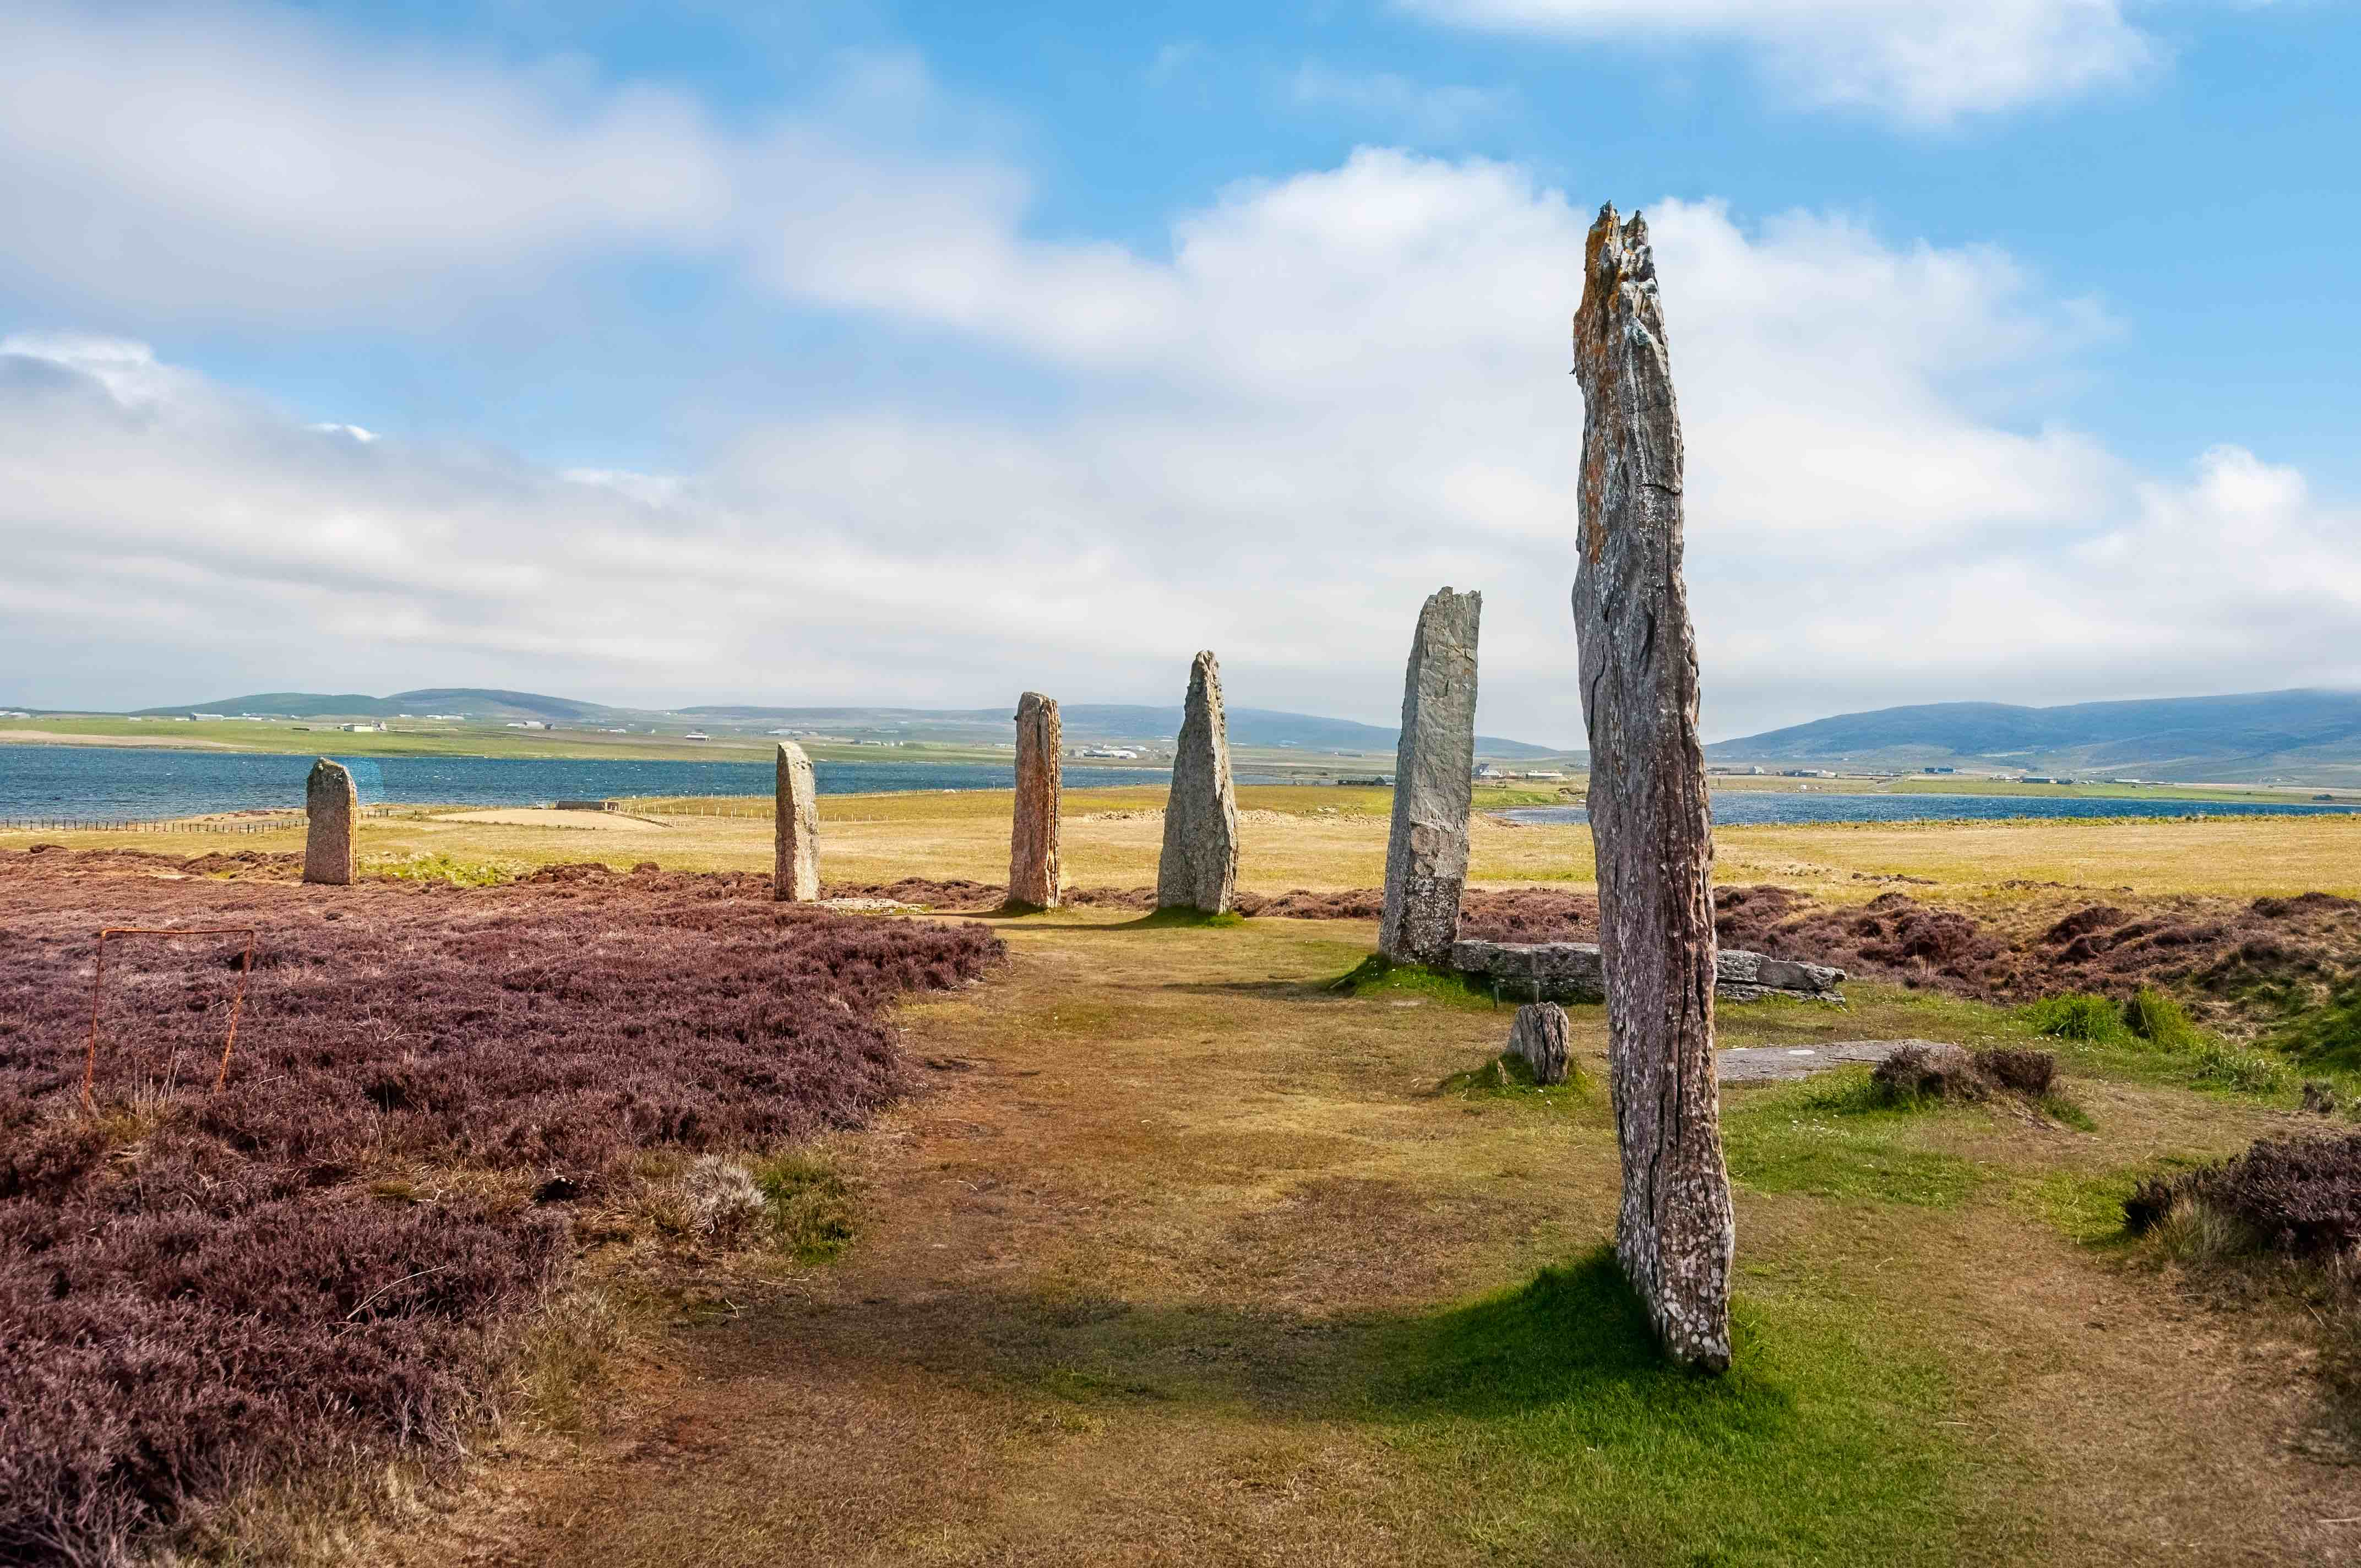 The Heart of Neolithic Orkney, the standing stones of Stenness.